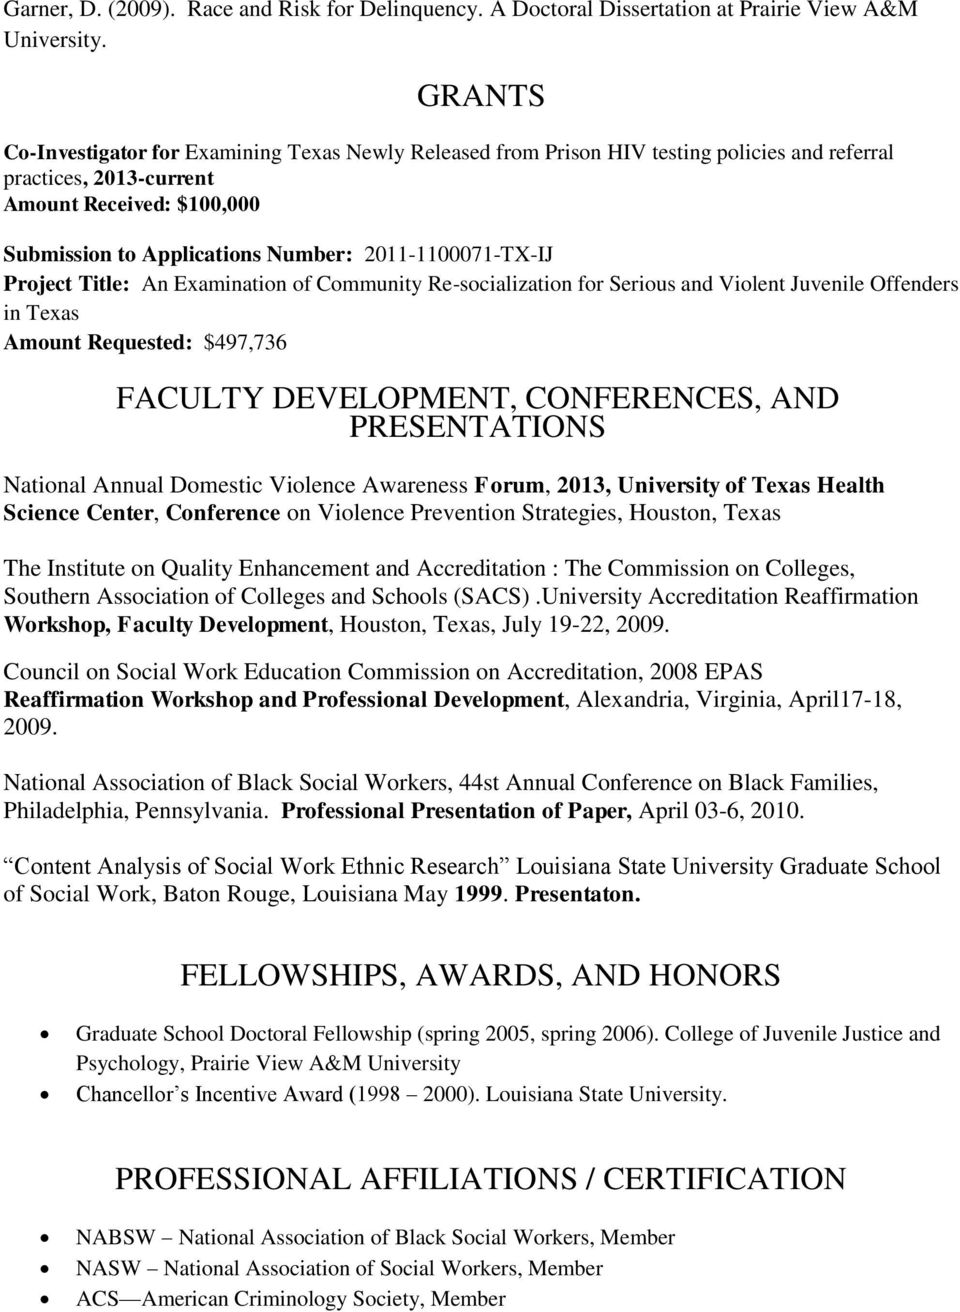 2011-1100071-TX-IJ Project Title: An Examination of Community Re-socialization for Serious and Violent Juvenile Offenders in Texas Amount Requested: $497,736 FACULTY DEVELOPMENT, CONFERENCES, AND